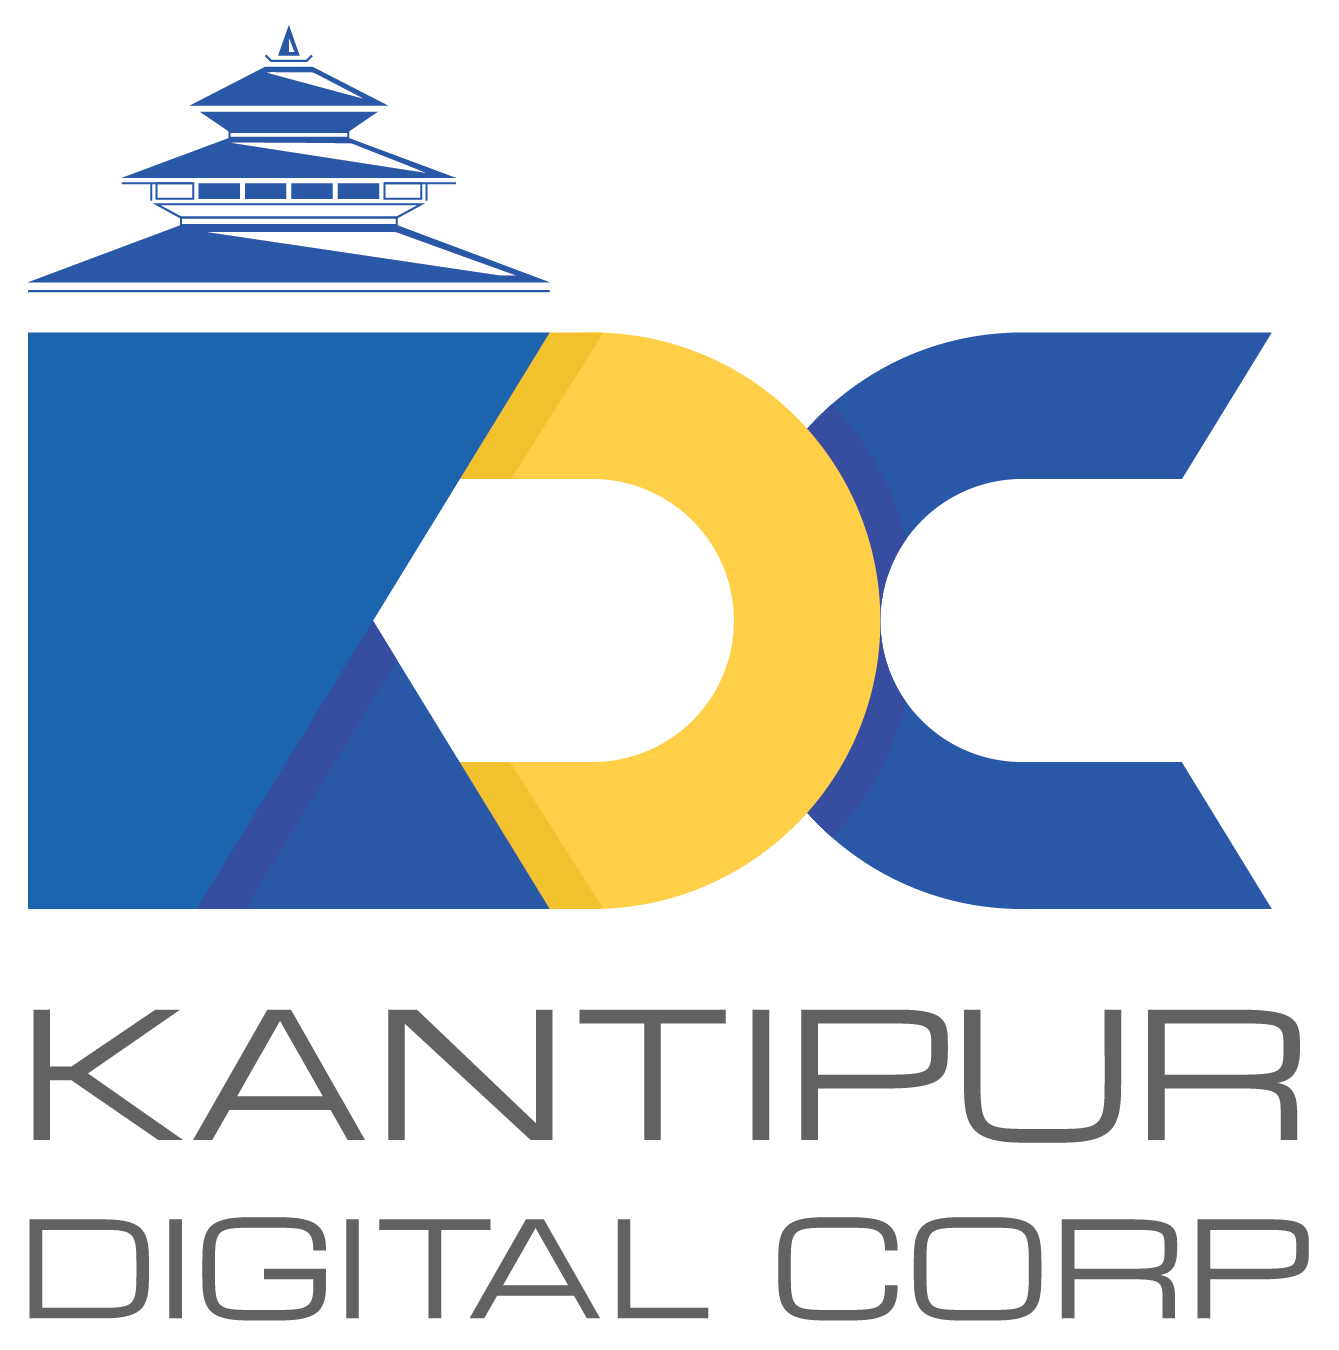 Kantipur Digital Corp